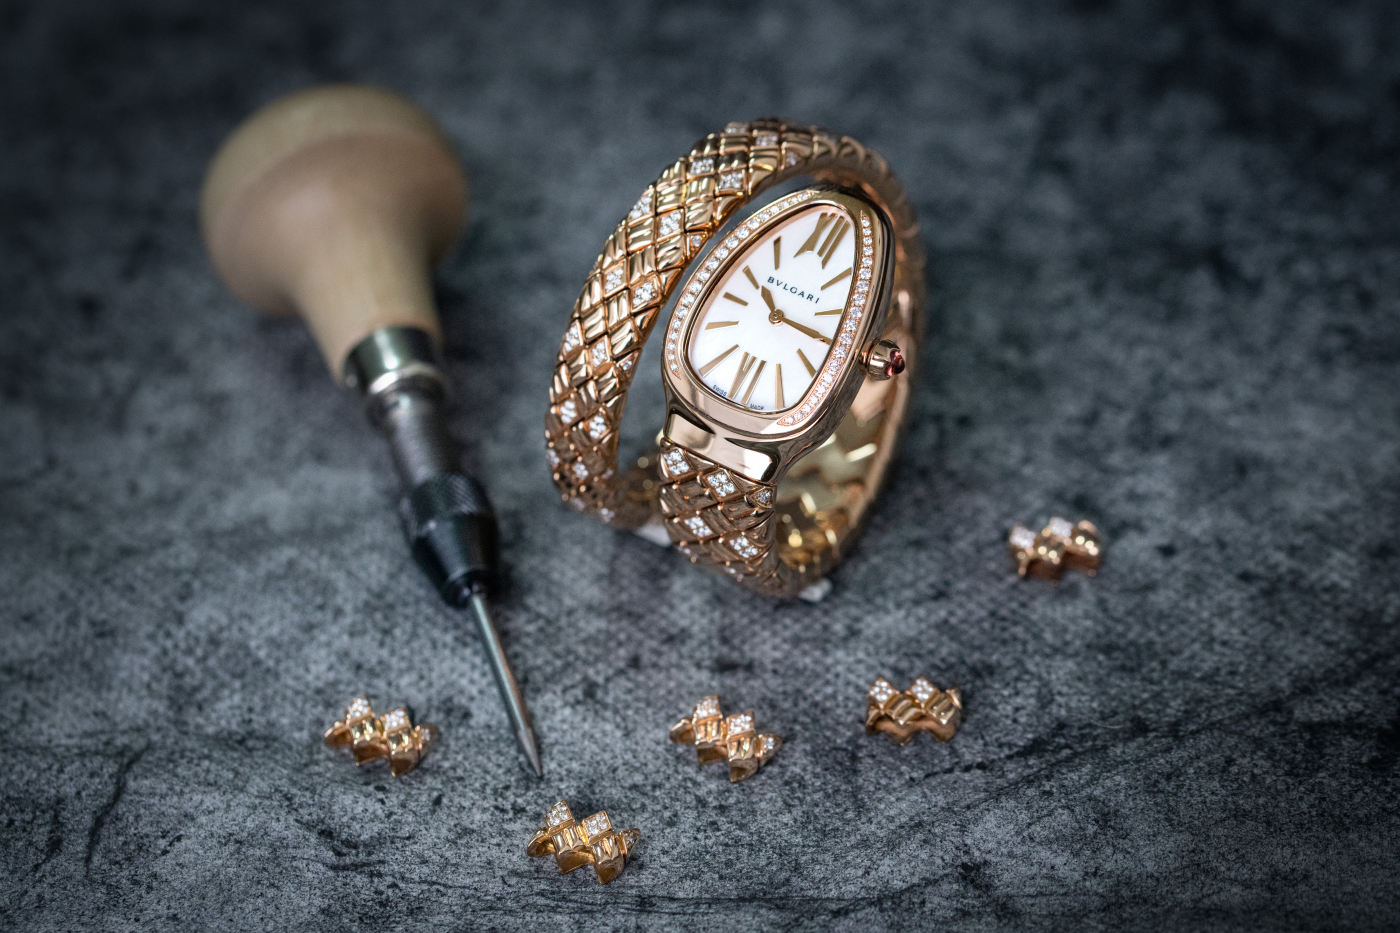 bulgari_serpenti_spiga_gold_making_-_europa_star_watch_magazine_2021